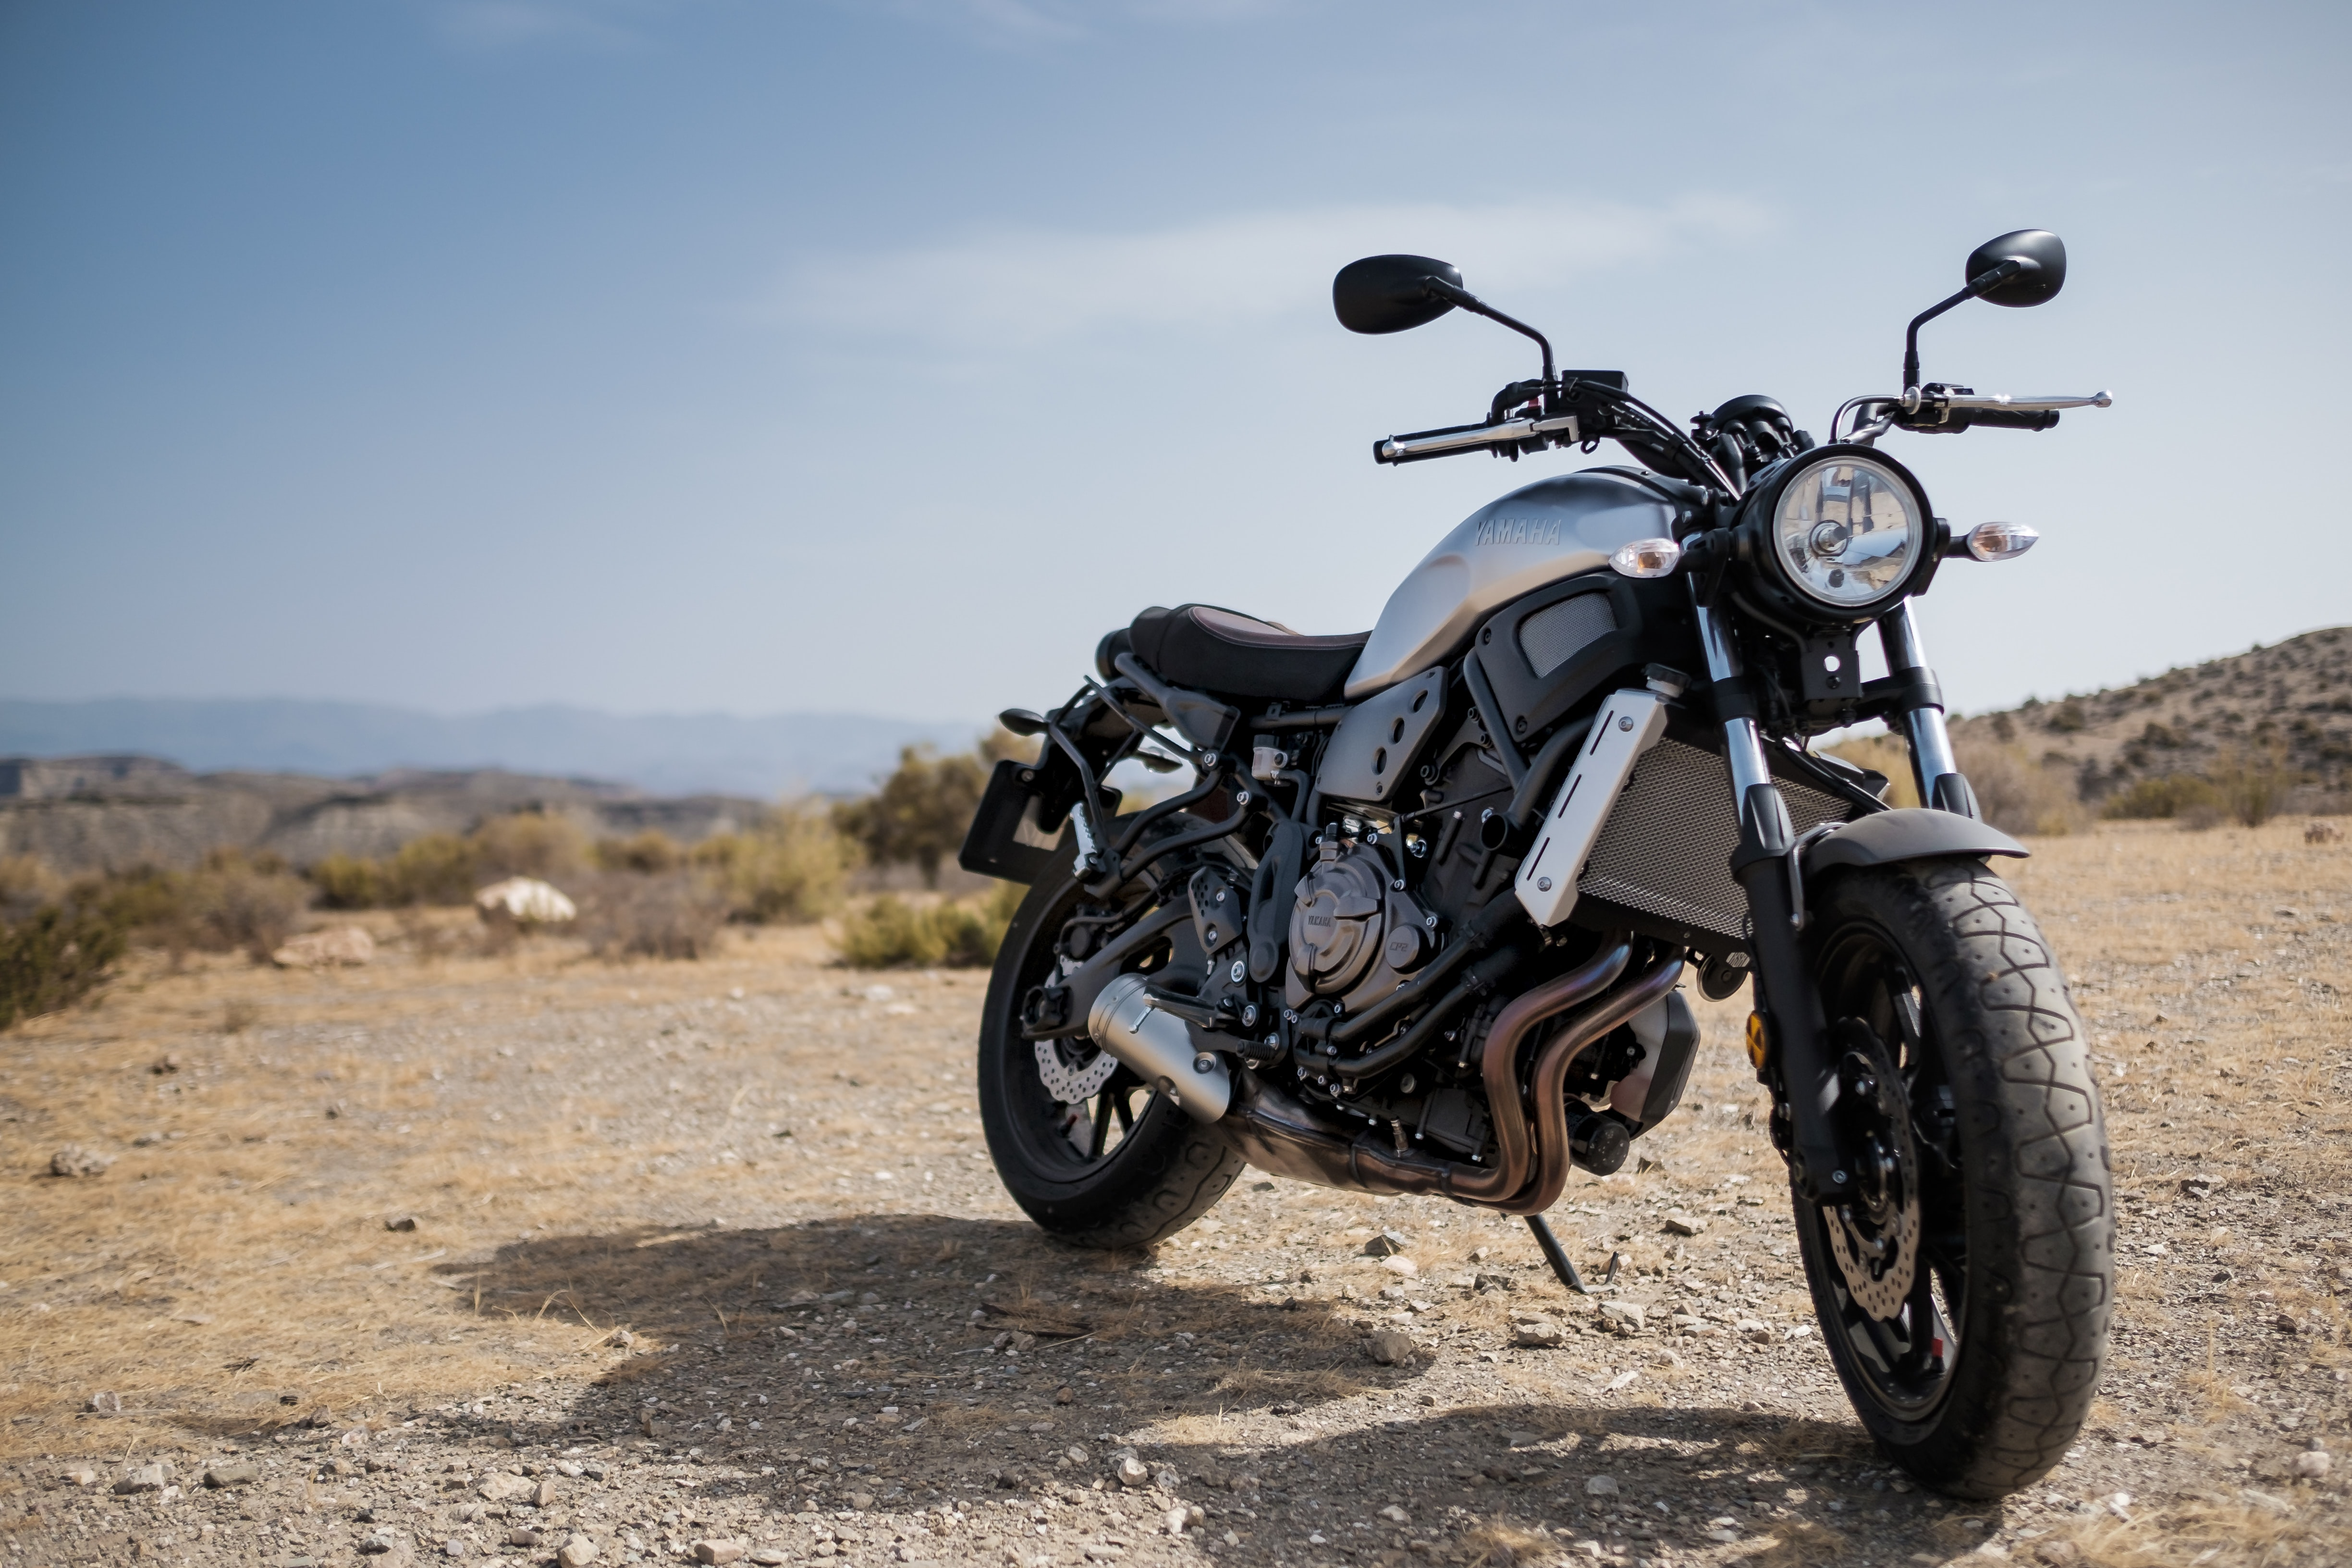 A motorcycle in the desert in Tabernas